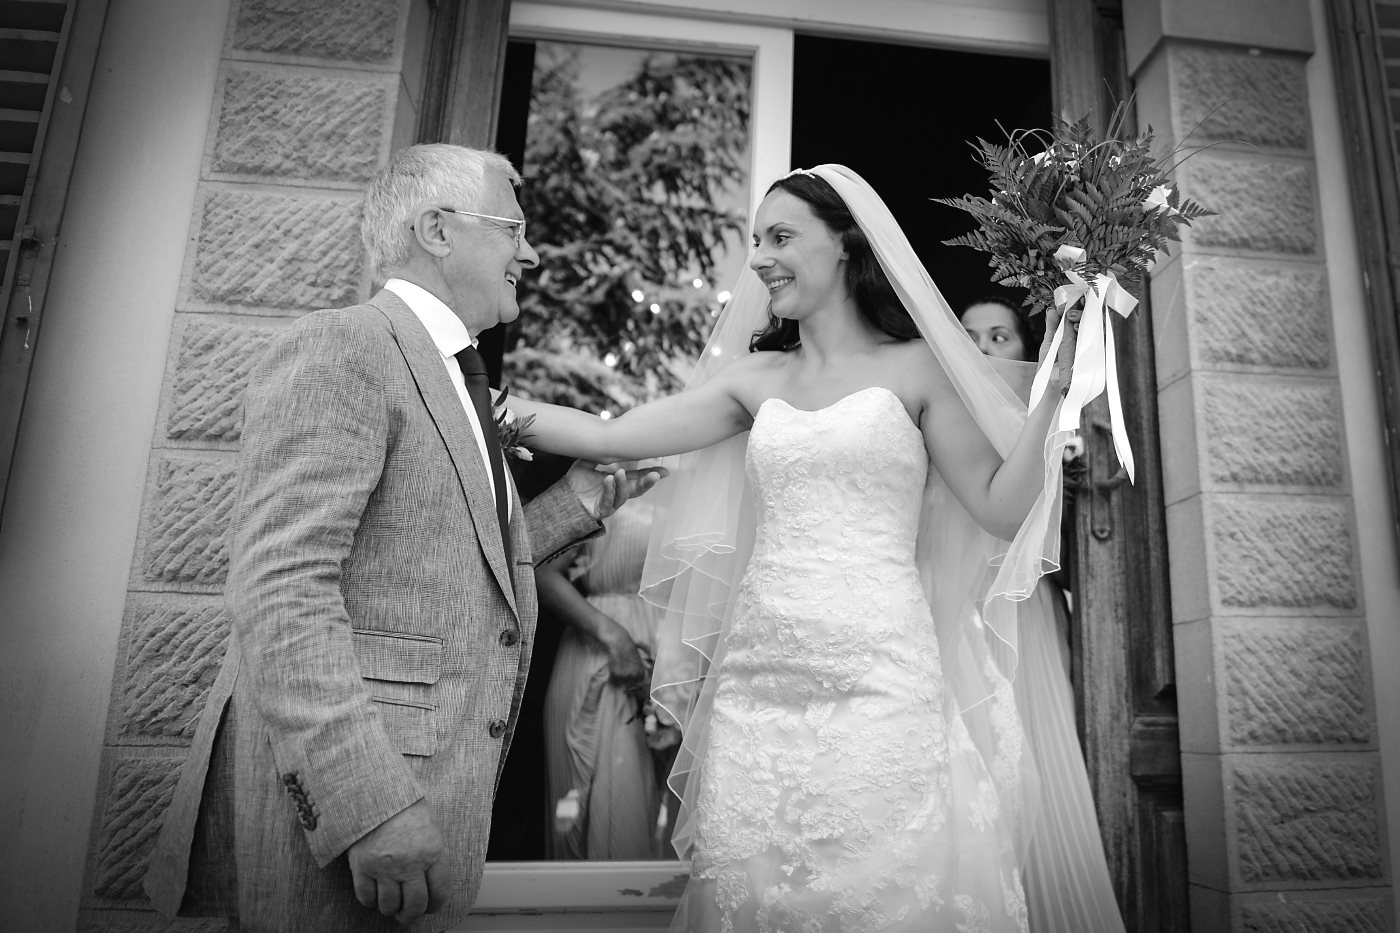 wedding photo arezzo_05.jpg